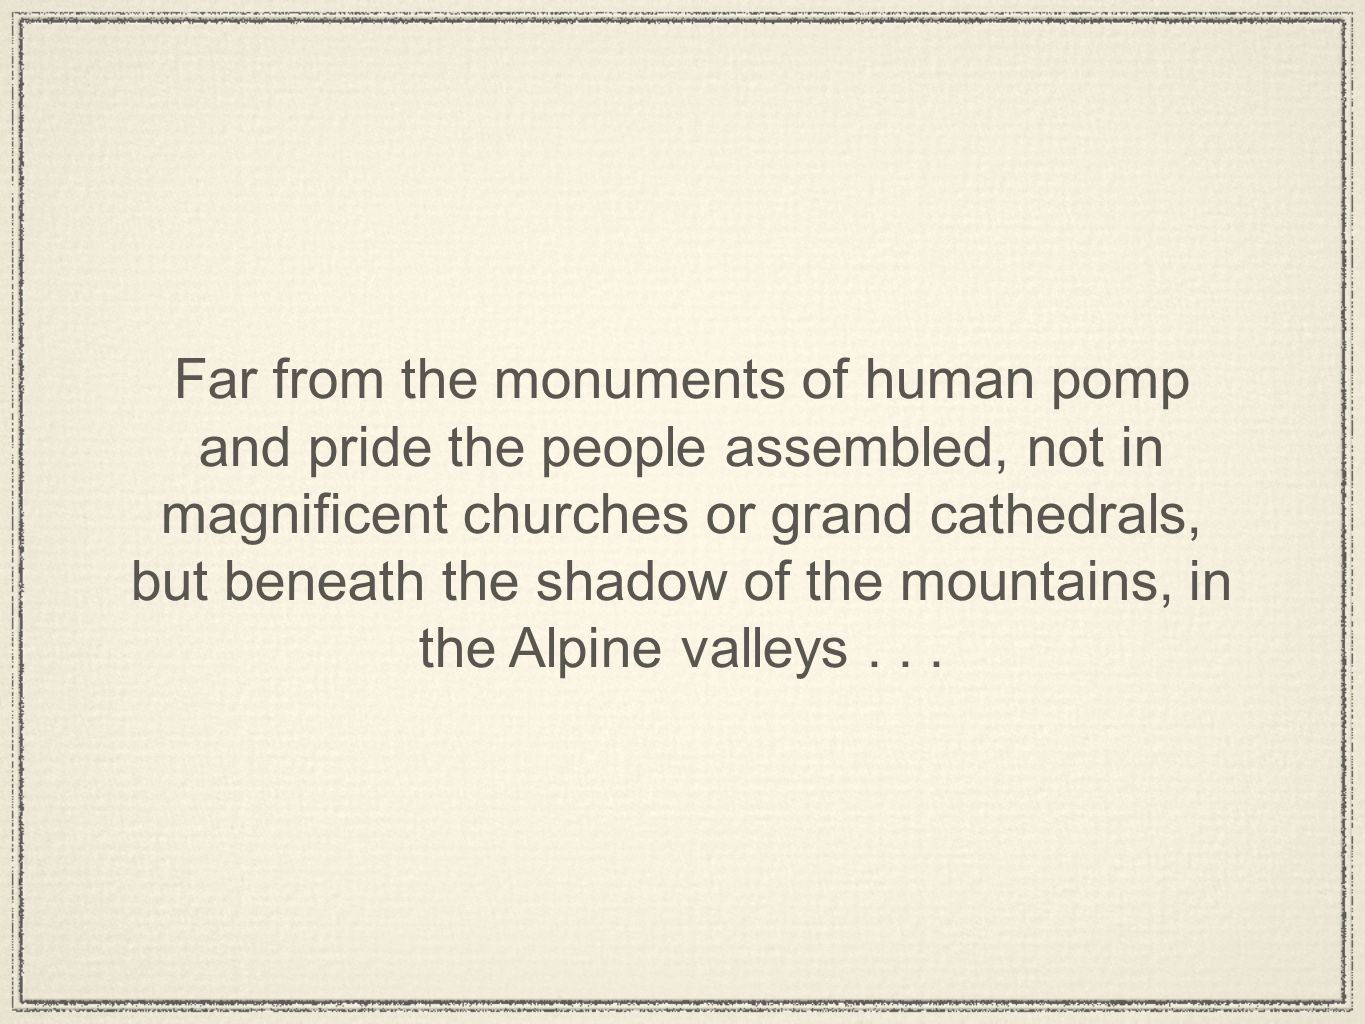 Far from the monuments of human pomp and pride the people assembled, not in magnificent churches or grand cathedrals, but beneath the shadow of the mountains, in the Alpine valleys...